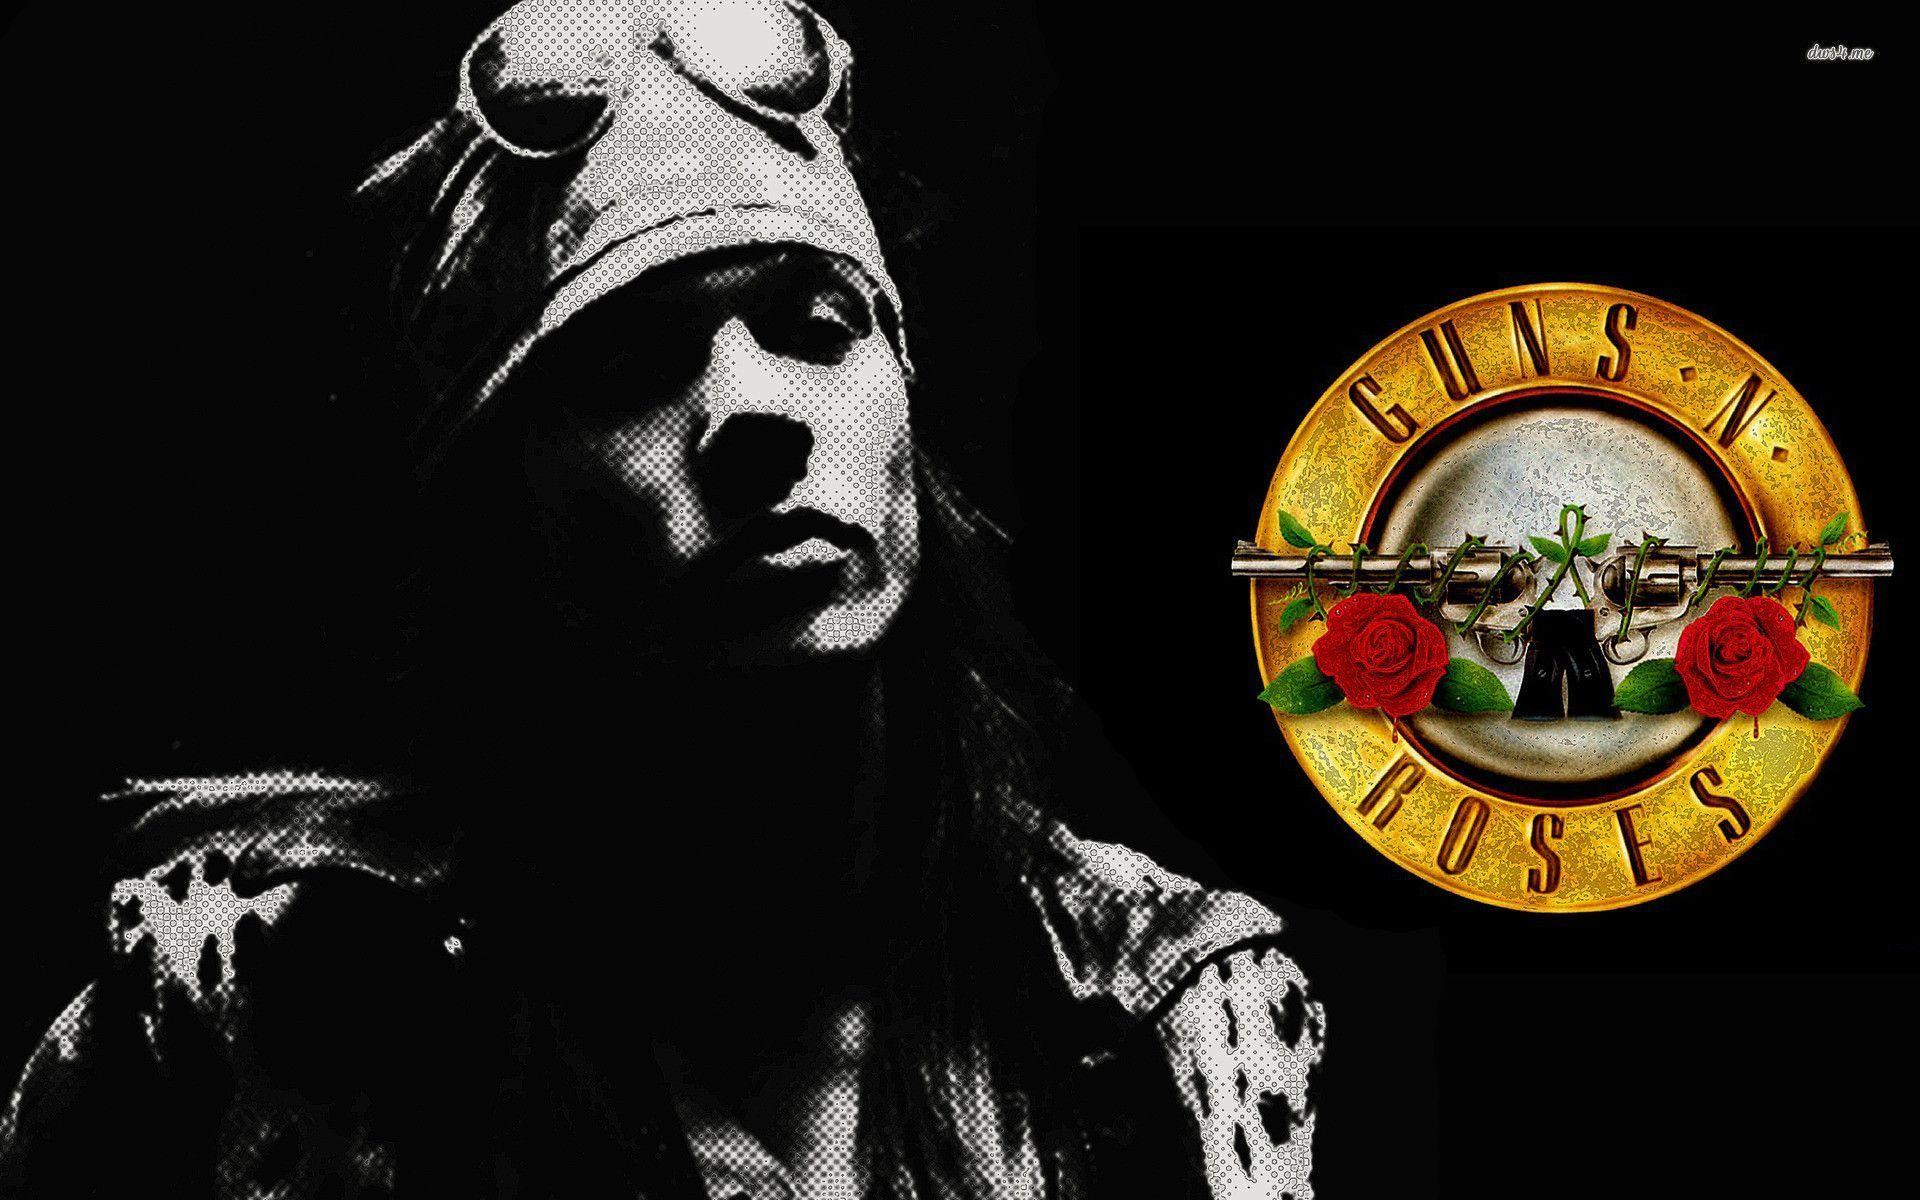 Axl Rose Guns N Roses HD Wallpapers High Definition High